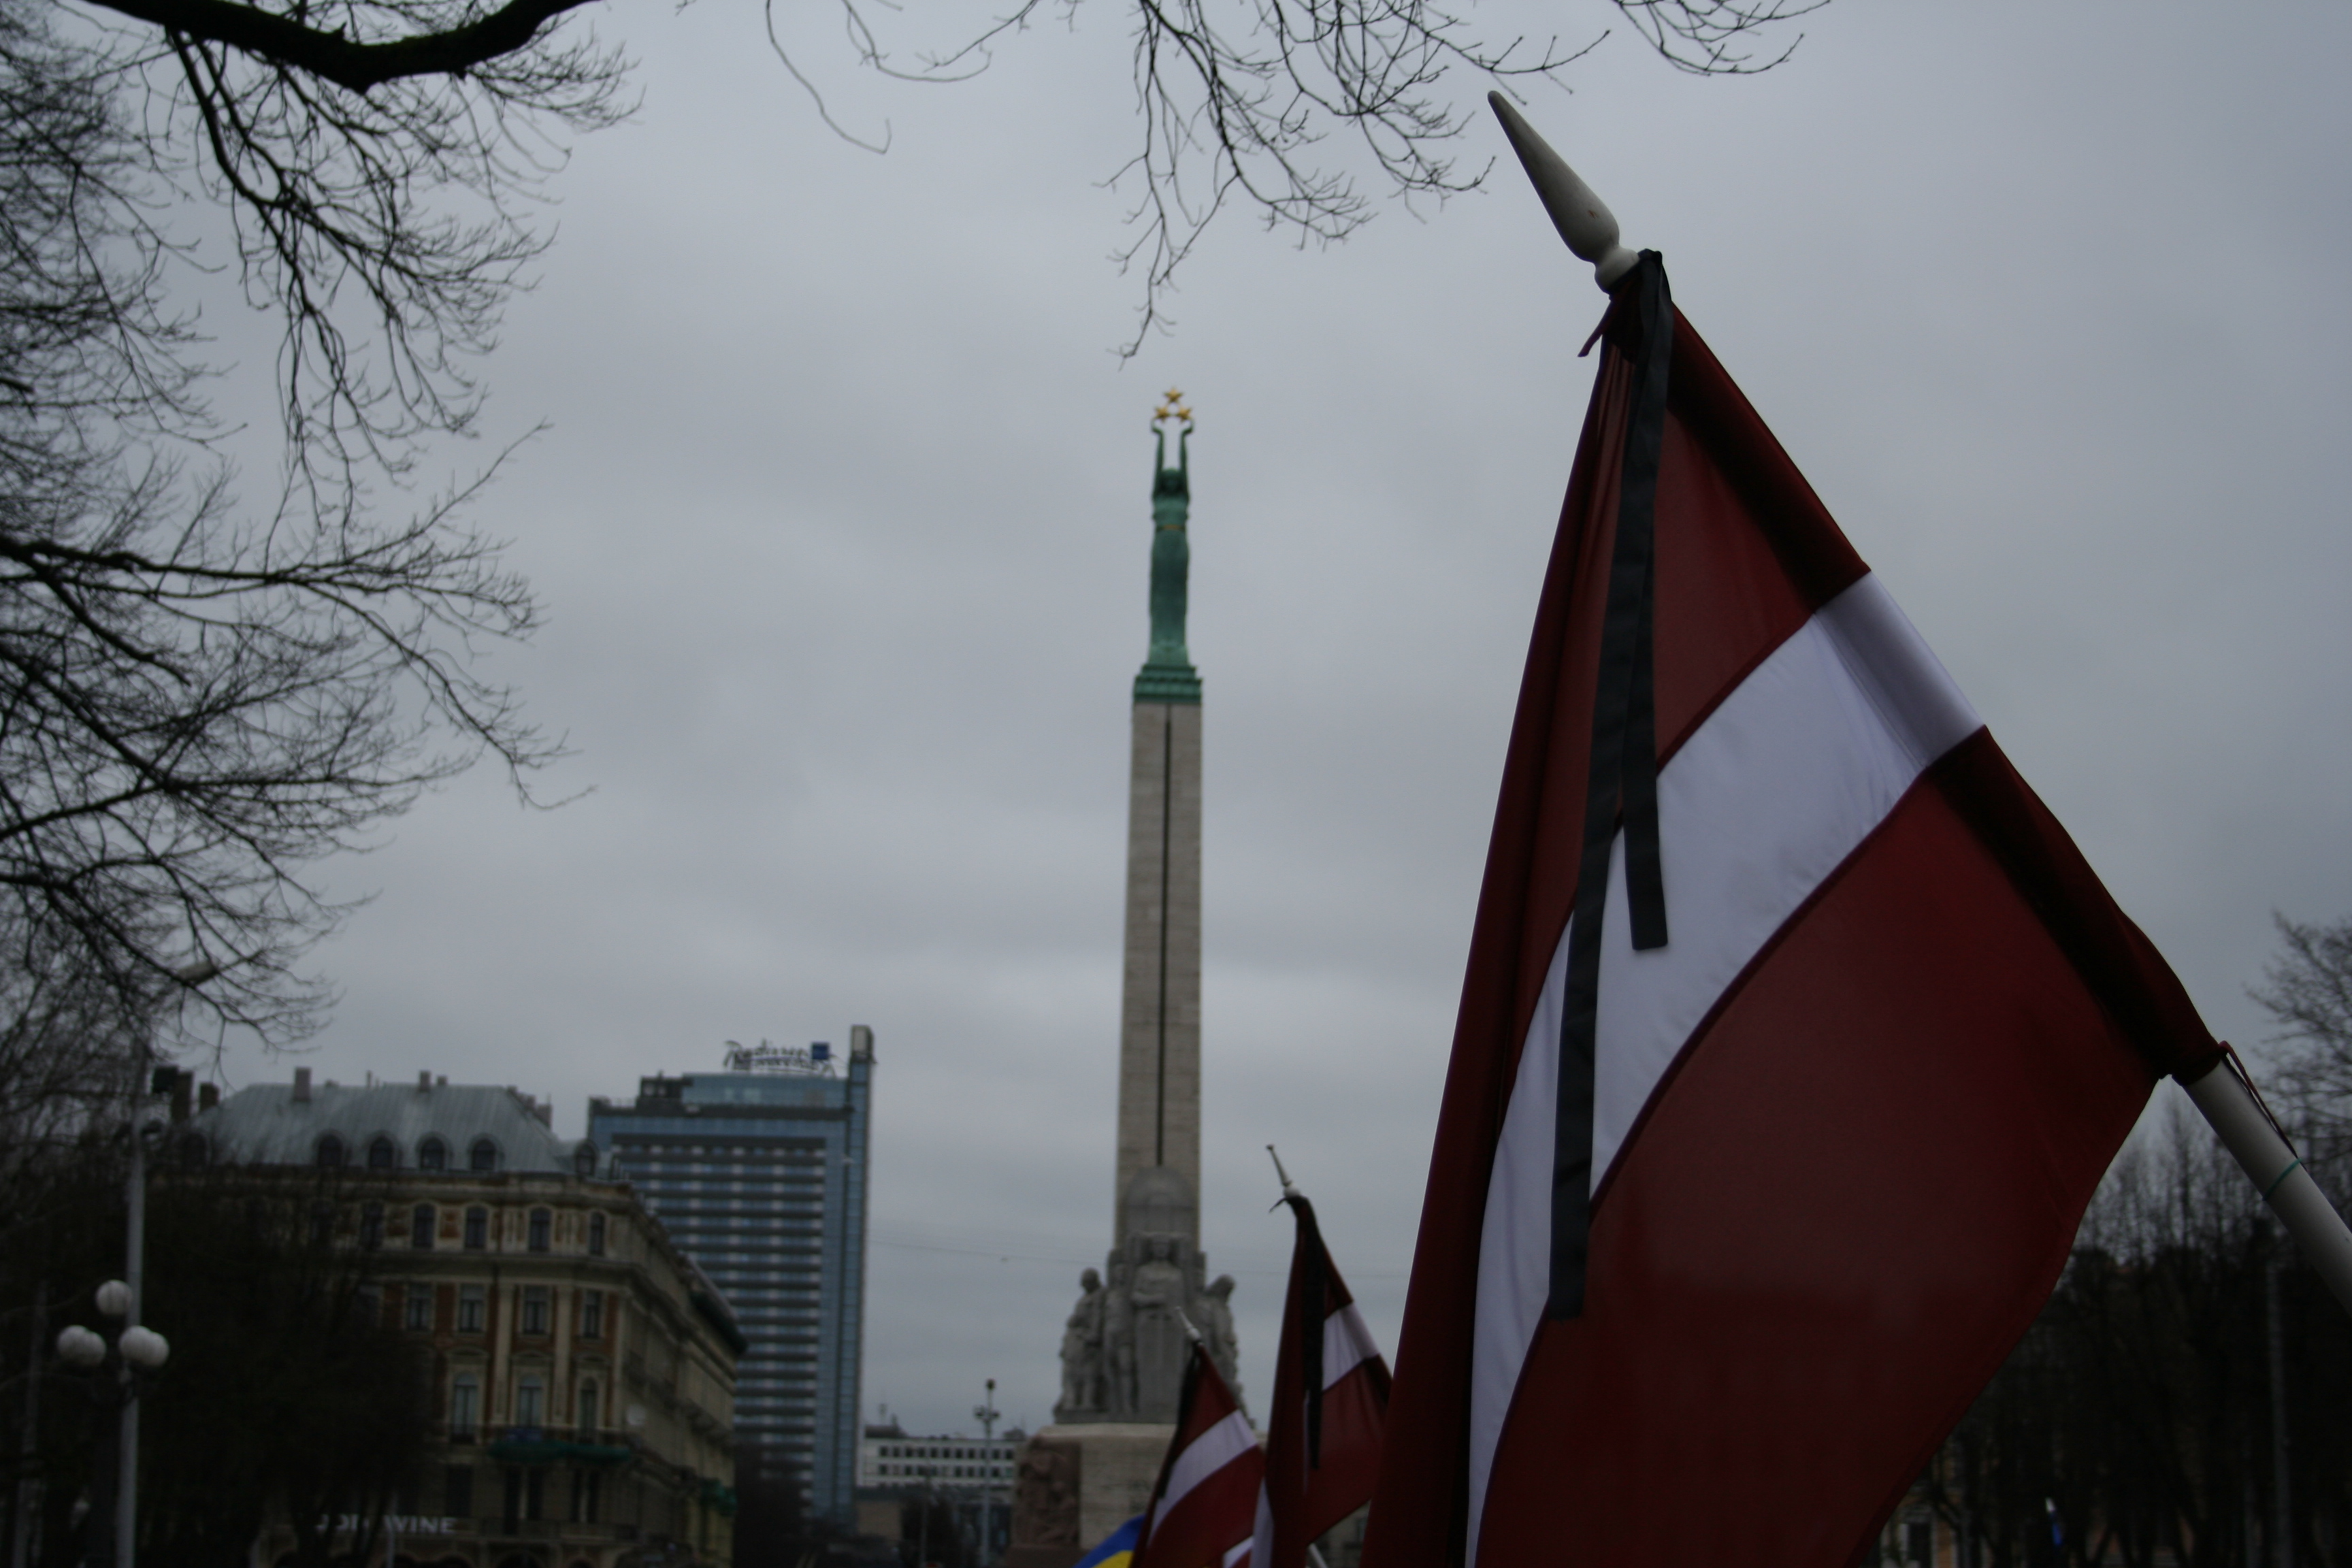 ON THE DAY OF LATVIA MOURNING